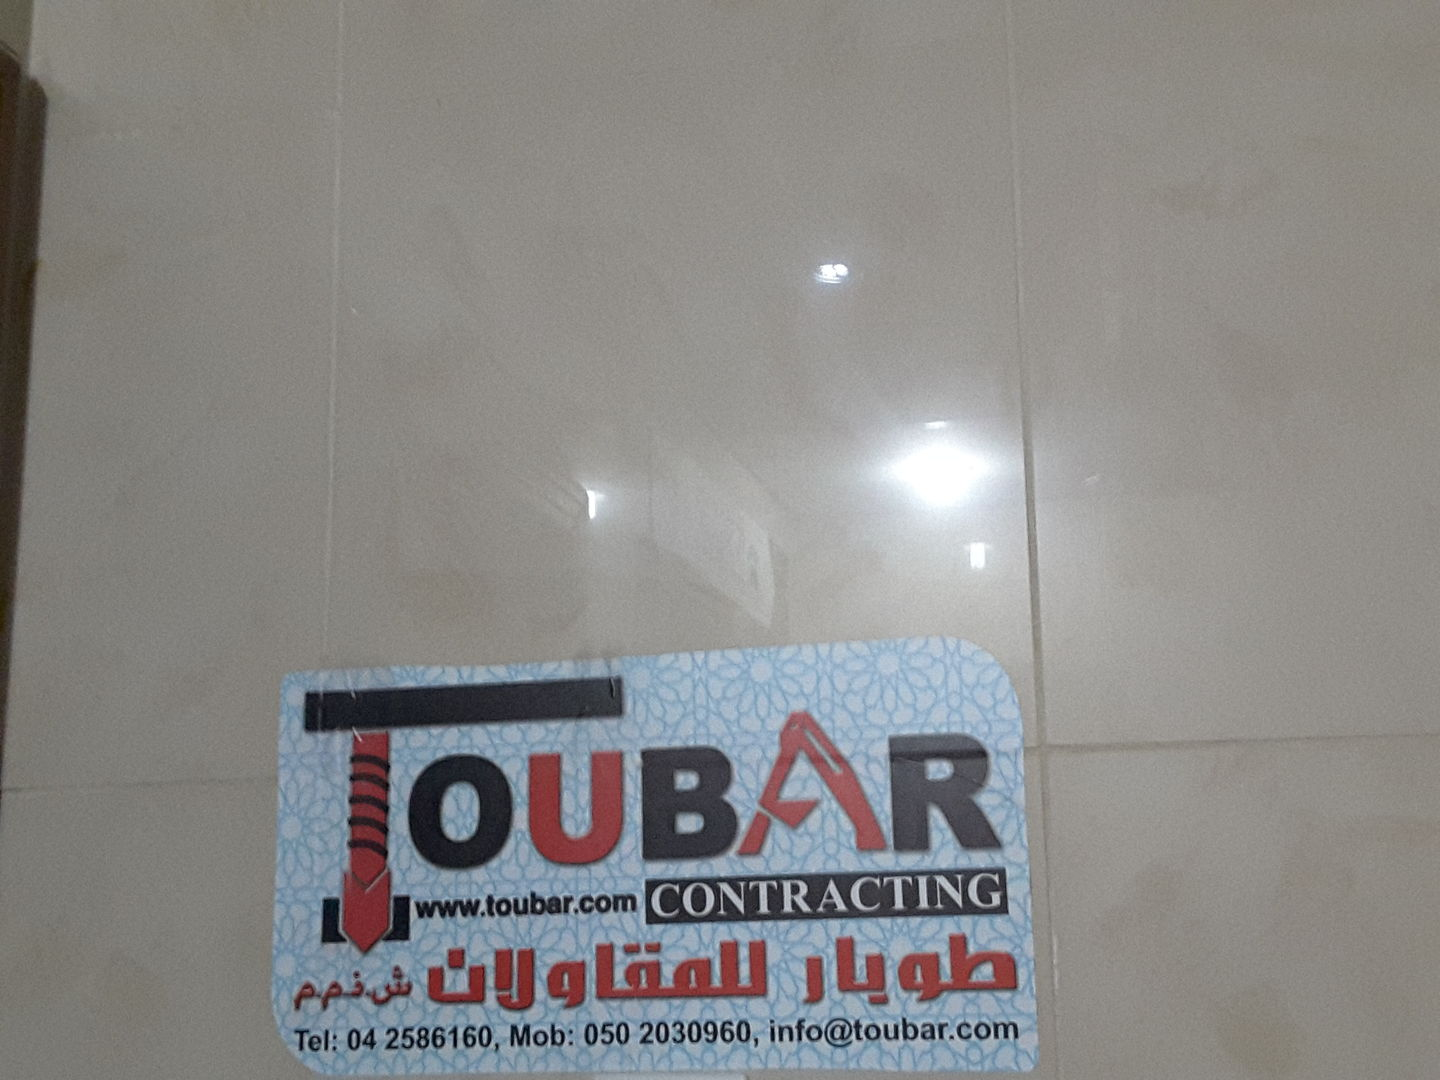 HiDubai-business-toubar-contracting-construction-heavy-industries-construction-renovation-al-nahda-2-dubai-2